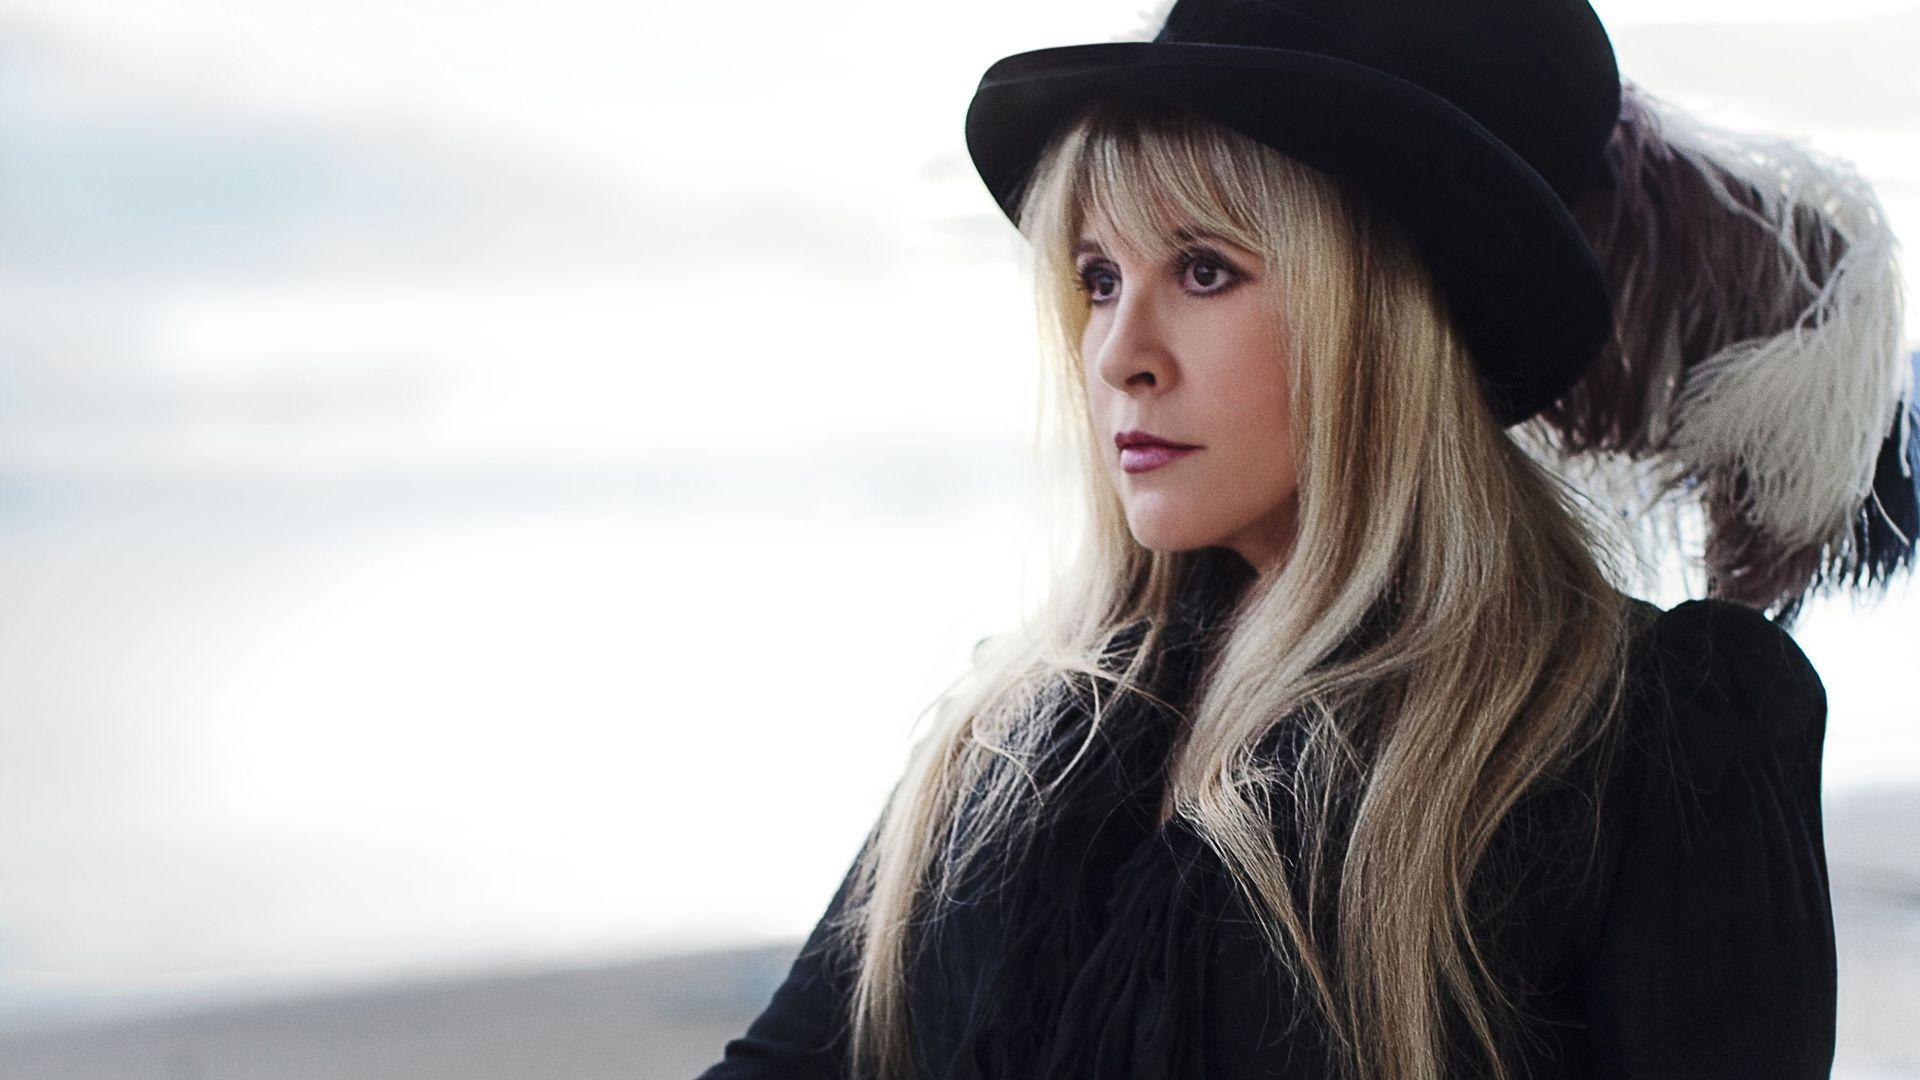 Stevie Nicks Wallpapers Screensavers